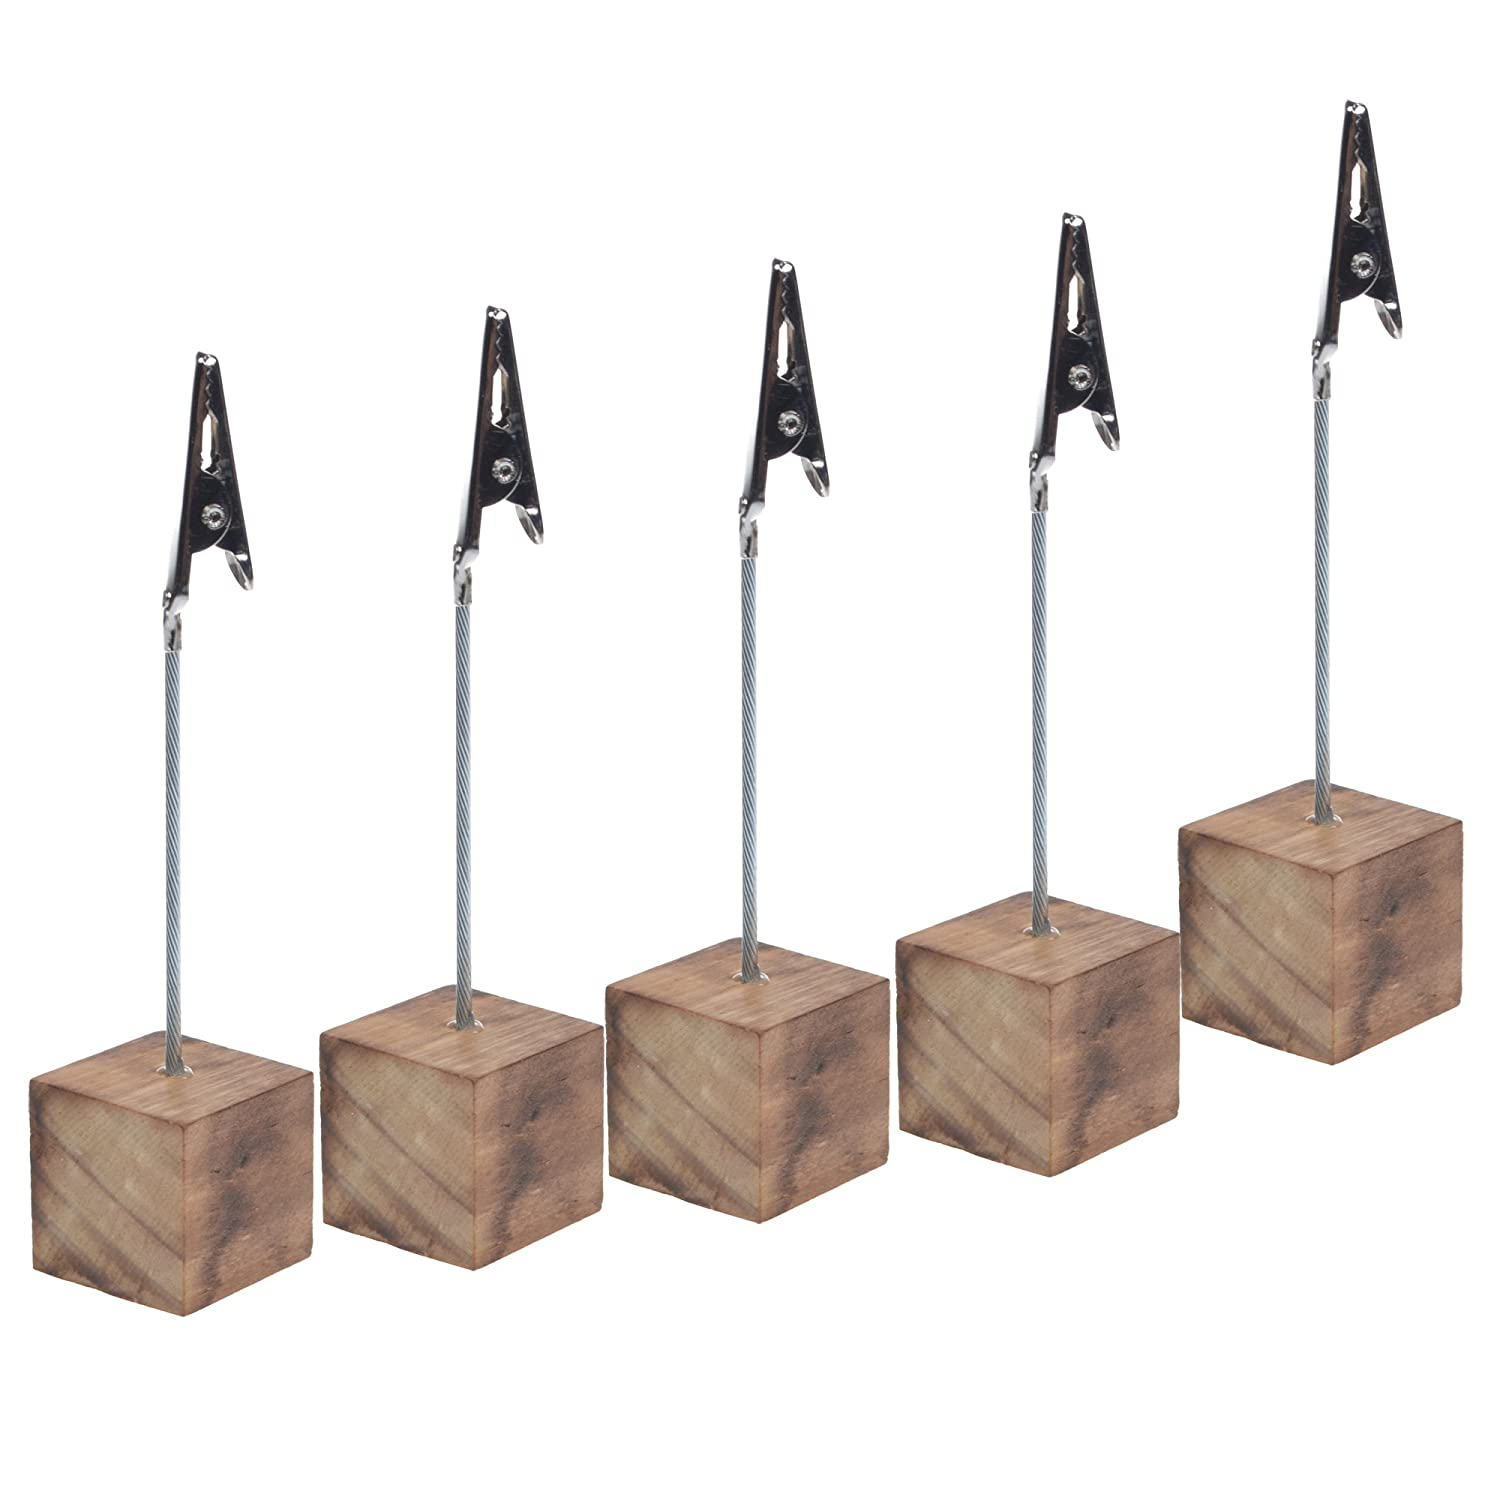 Wooden Base Cosmos/® 10 Pcs Lightweight Cube Base Memo Clips Holder with Alligator Clip Clasp for Displaying Number Cards AX-AY-ABHI-120902